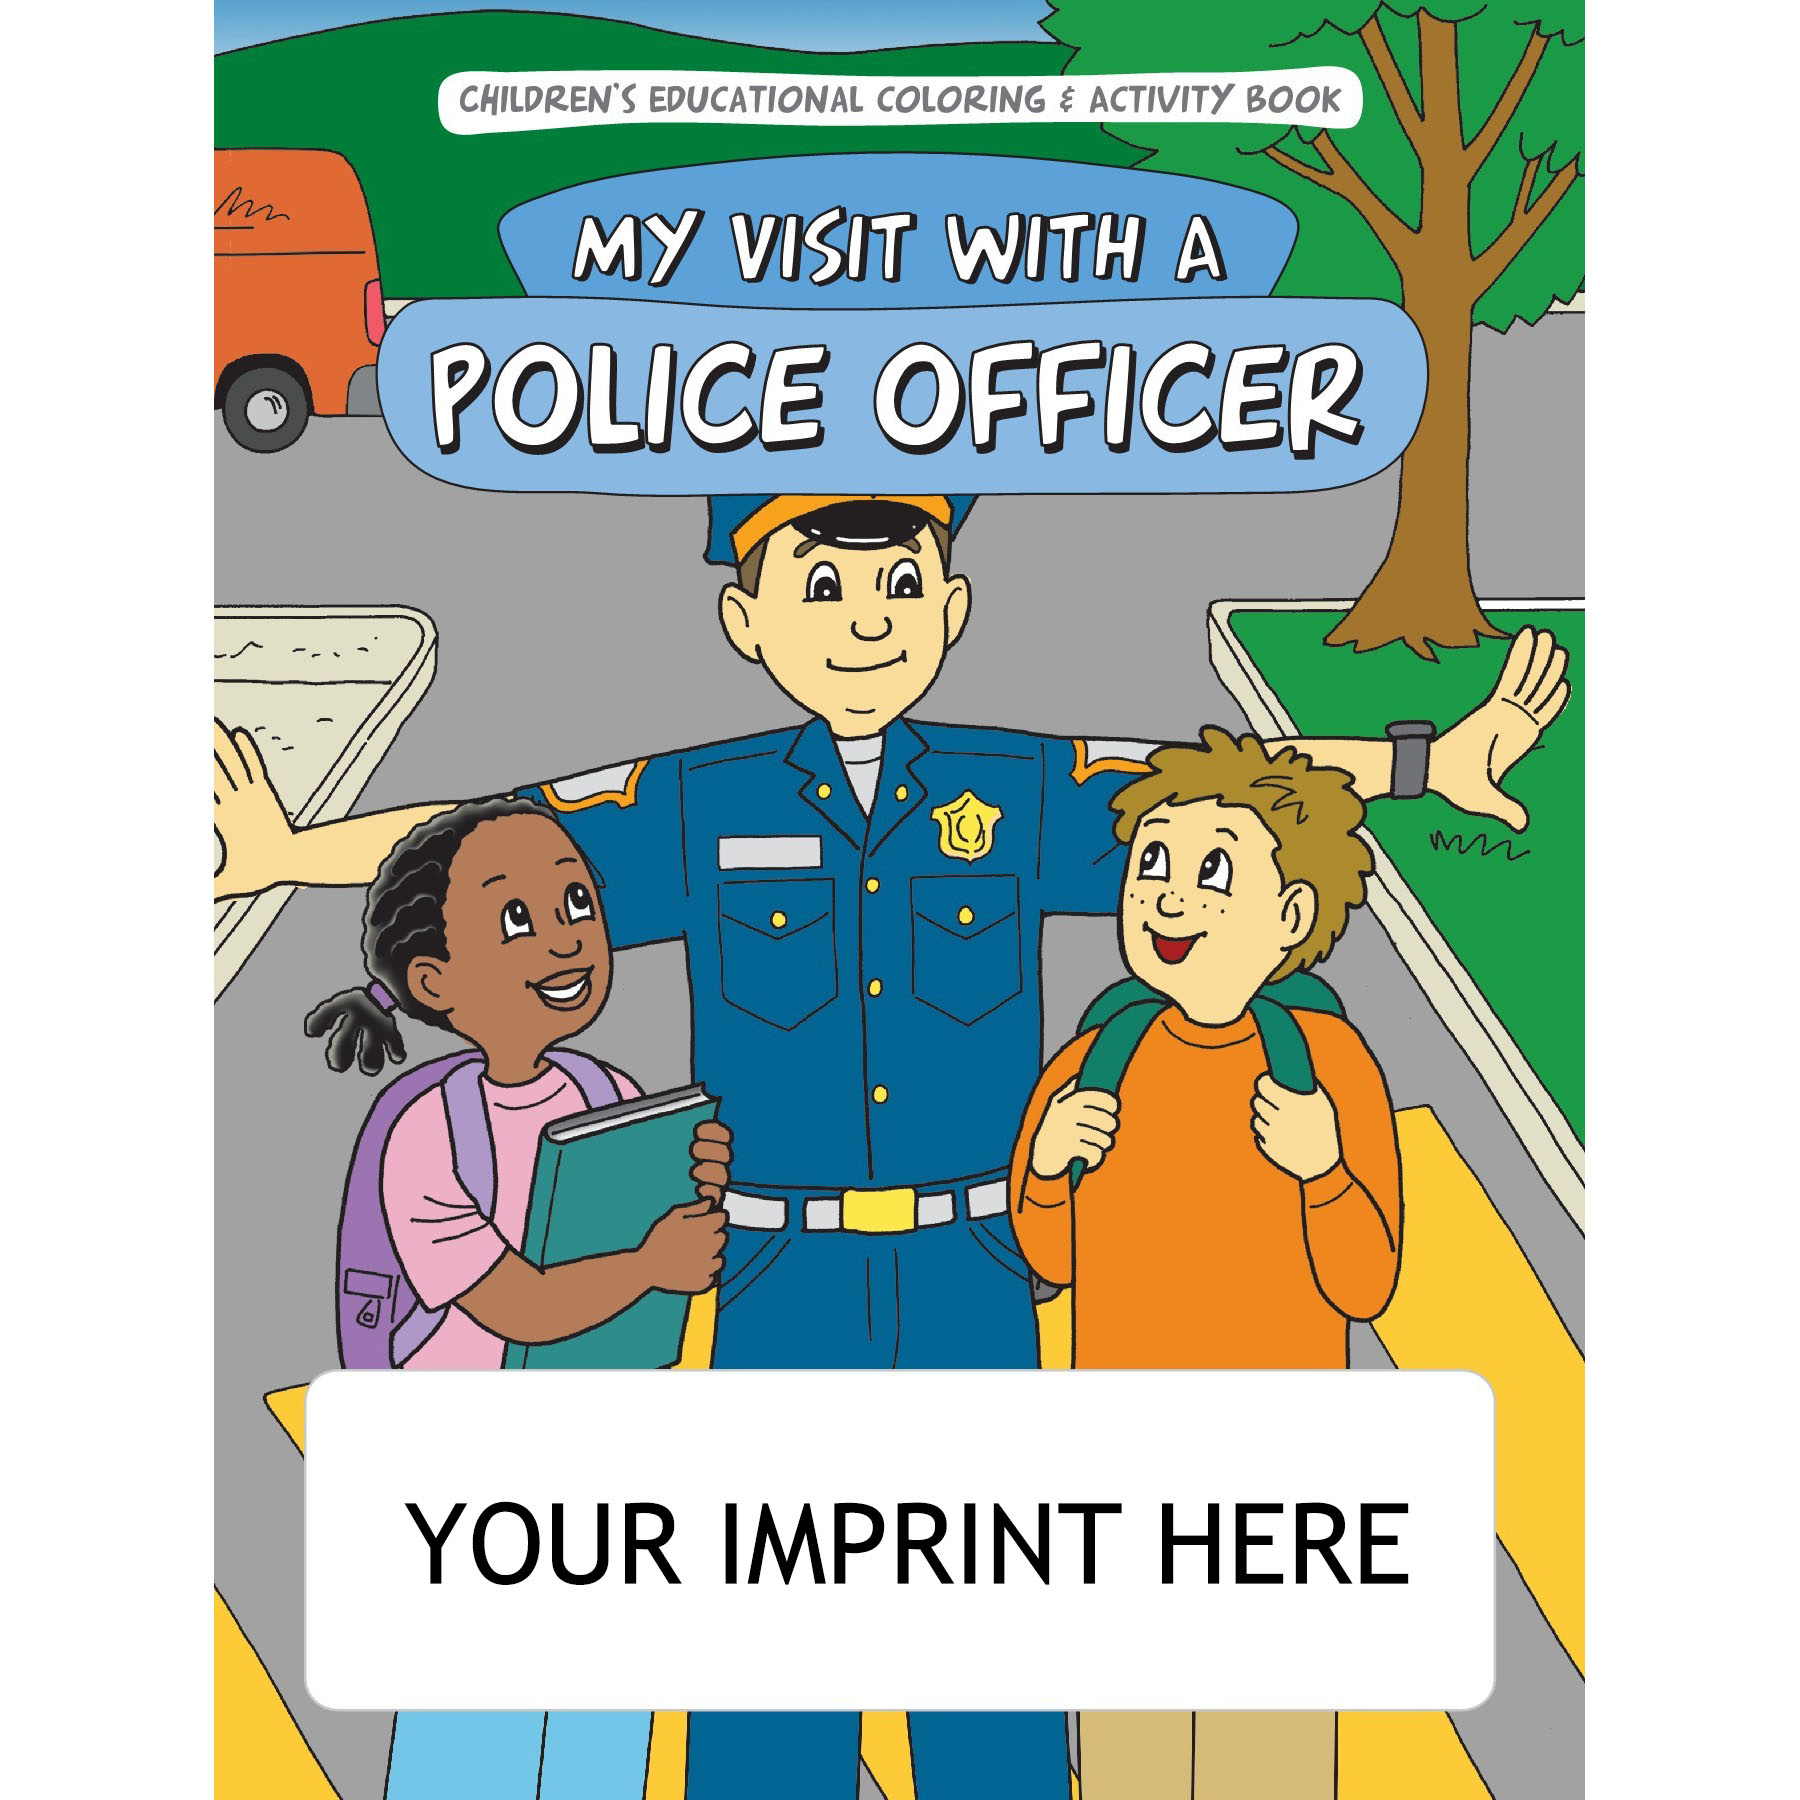 My Visit with a Police Officer Coloring & Activity Book